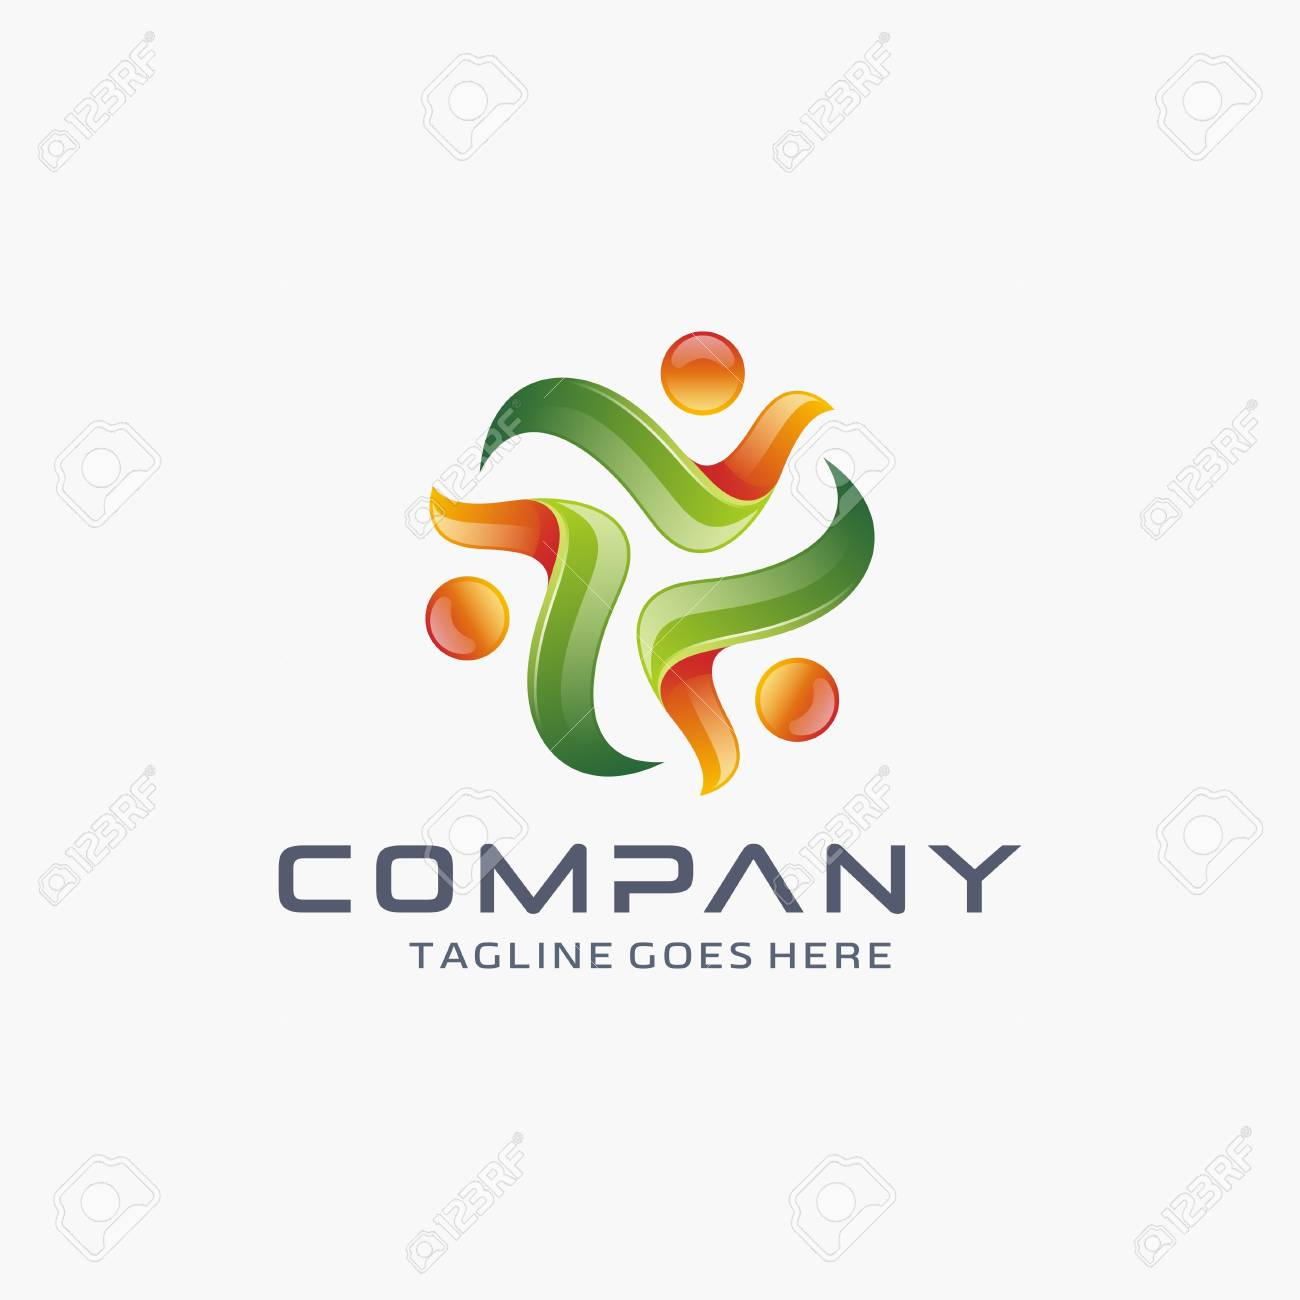 modern 3d triangle logo design template royalty free cliparts